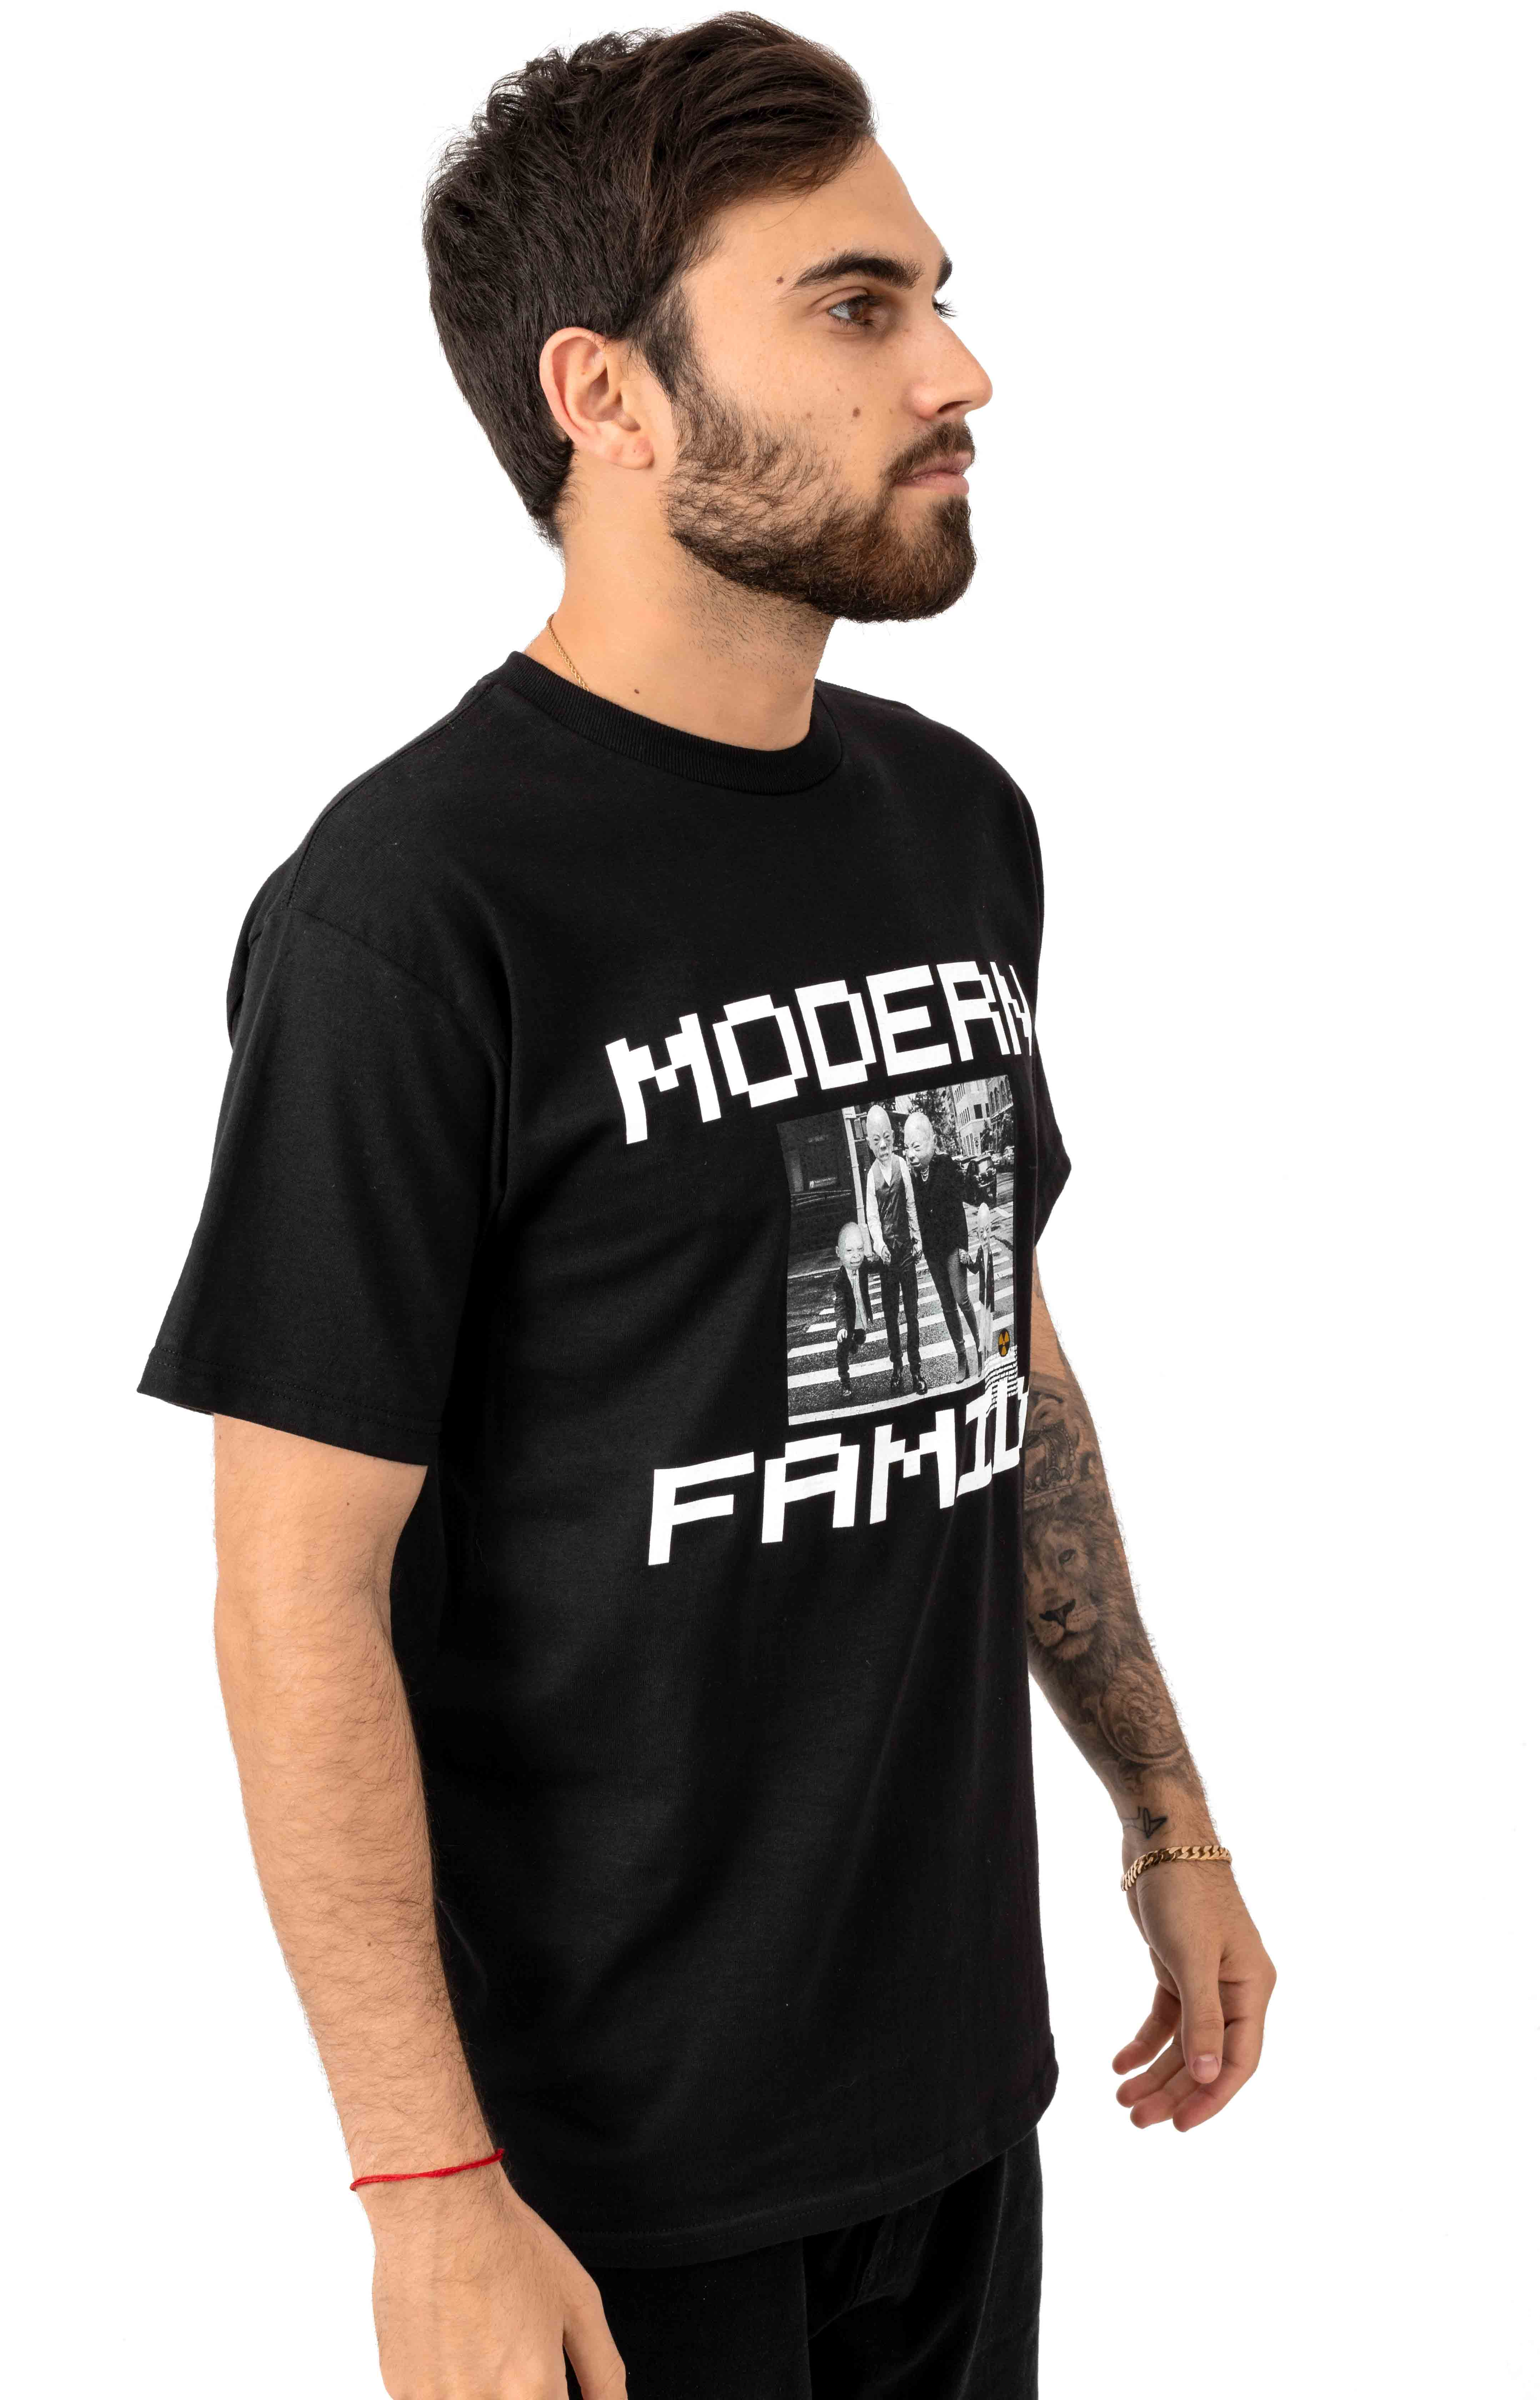 Nuclear Family T-Shirt - Black 2